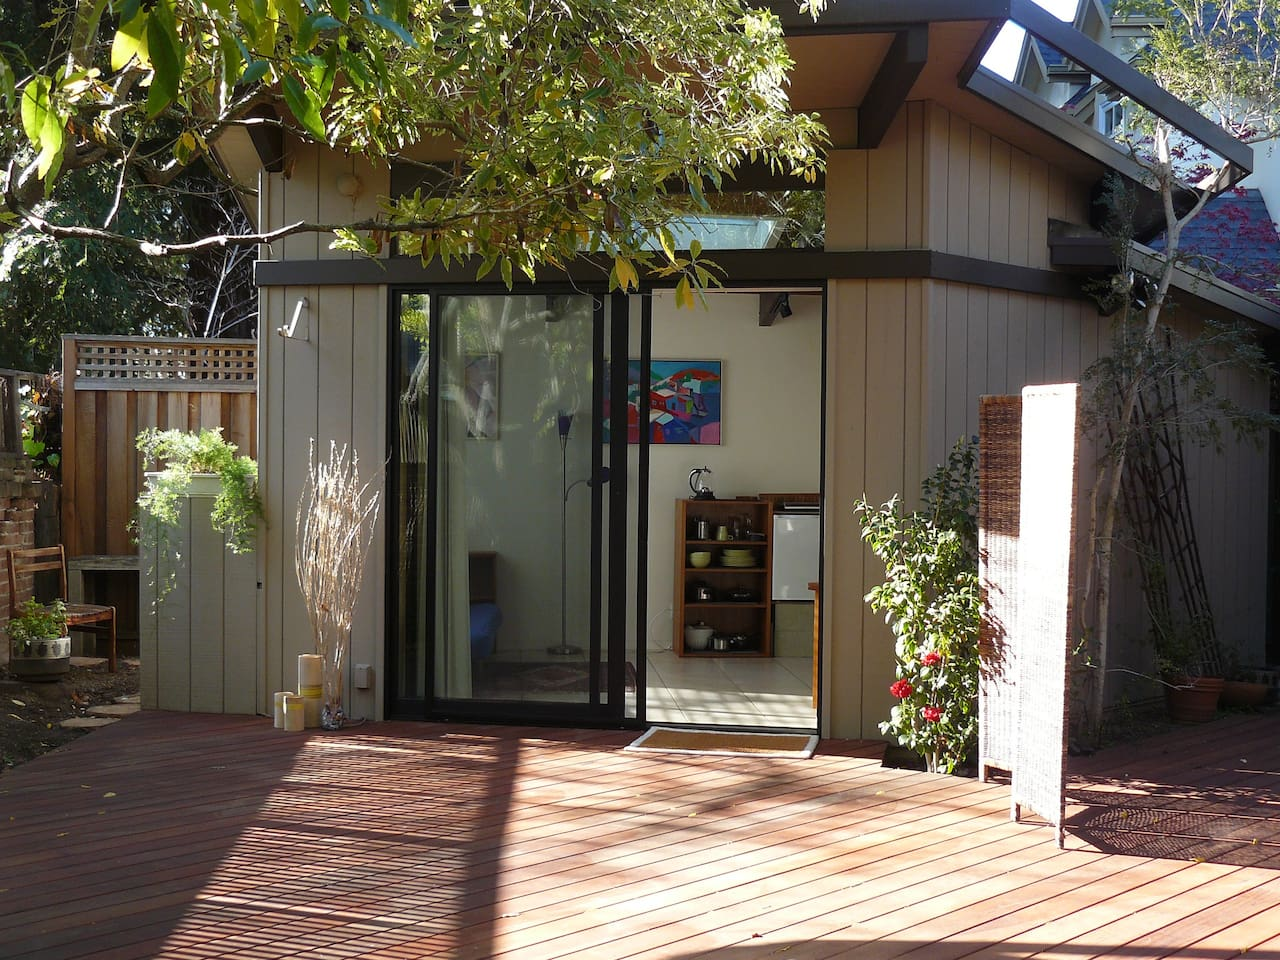 View of studio from redwood deck